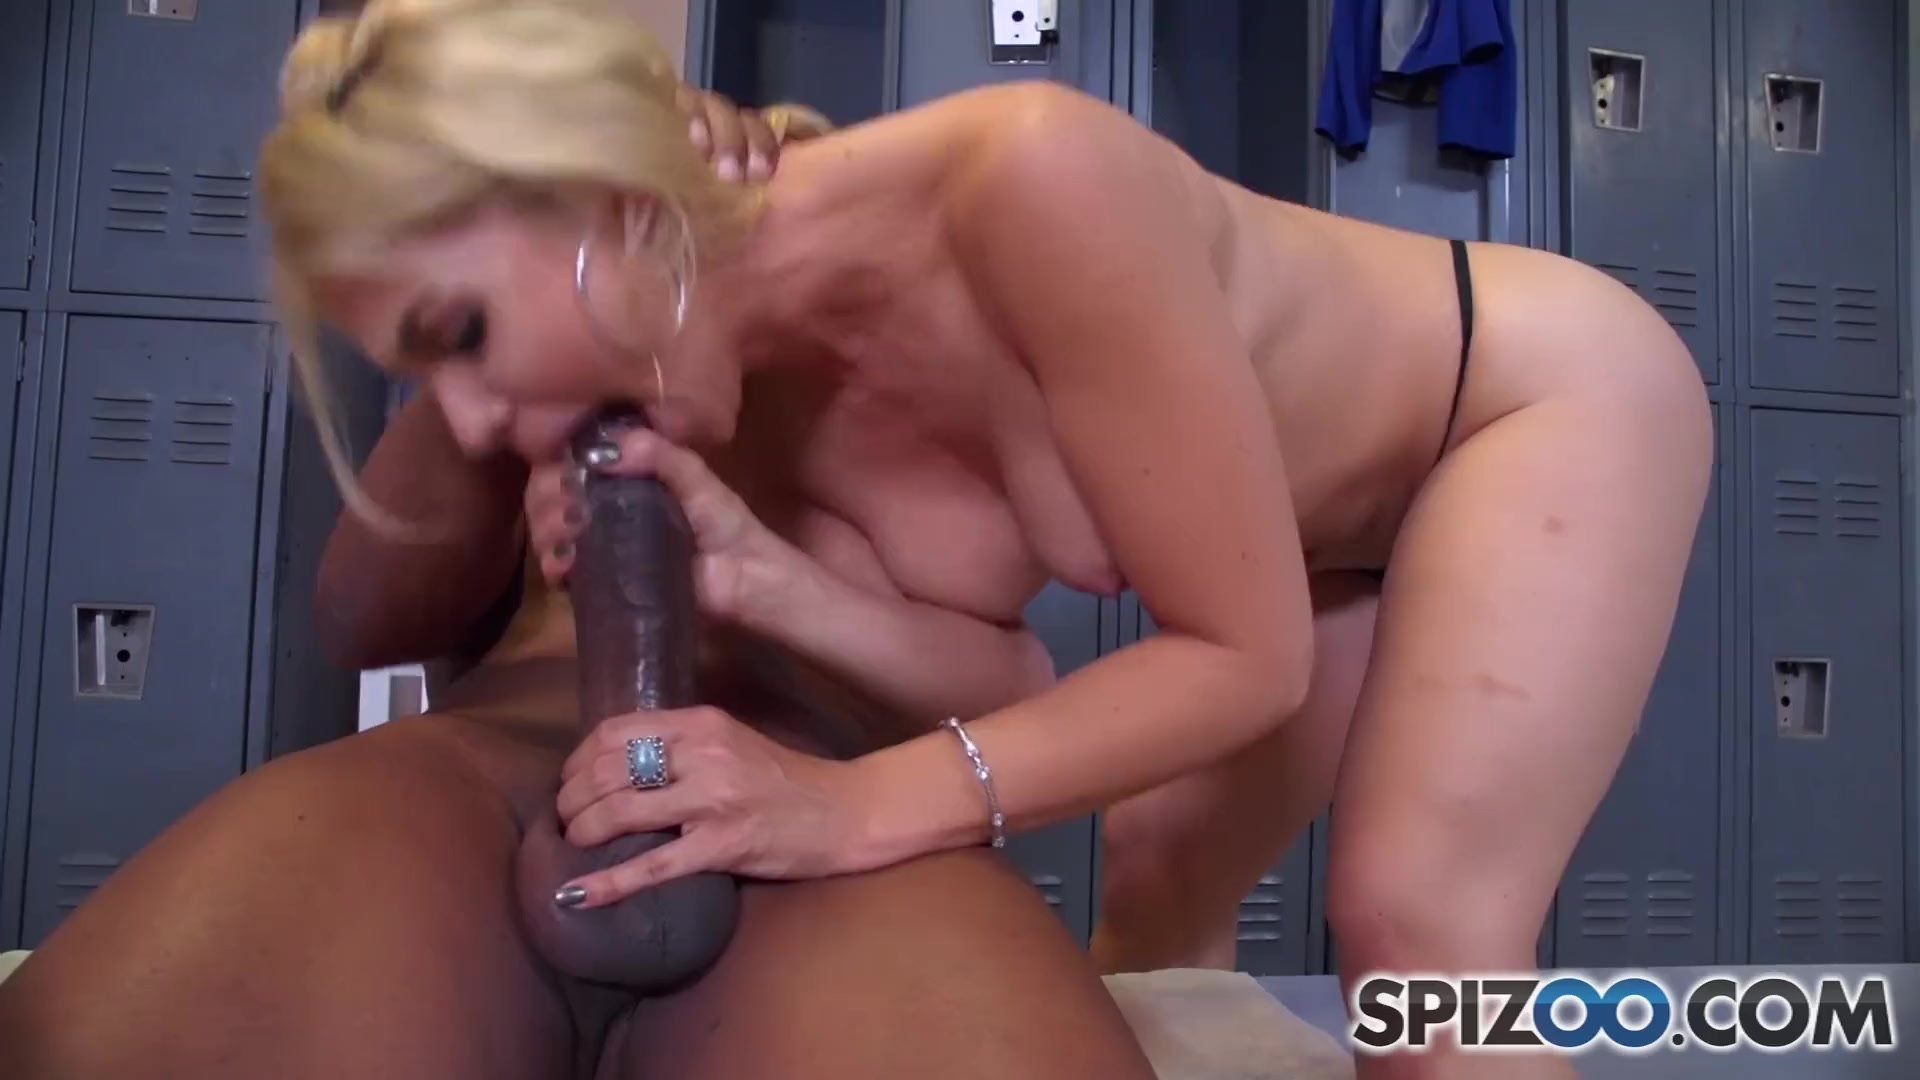 Spizoo - Sarah Vandella sucking a Big Black Cock, big boobs and big booty